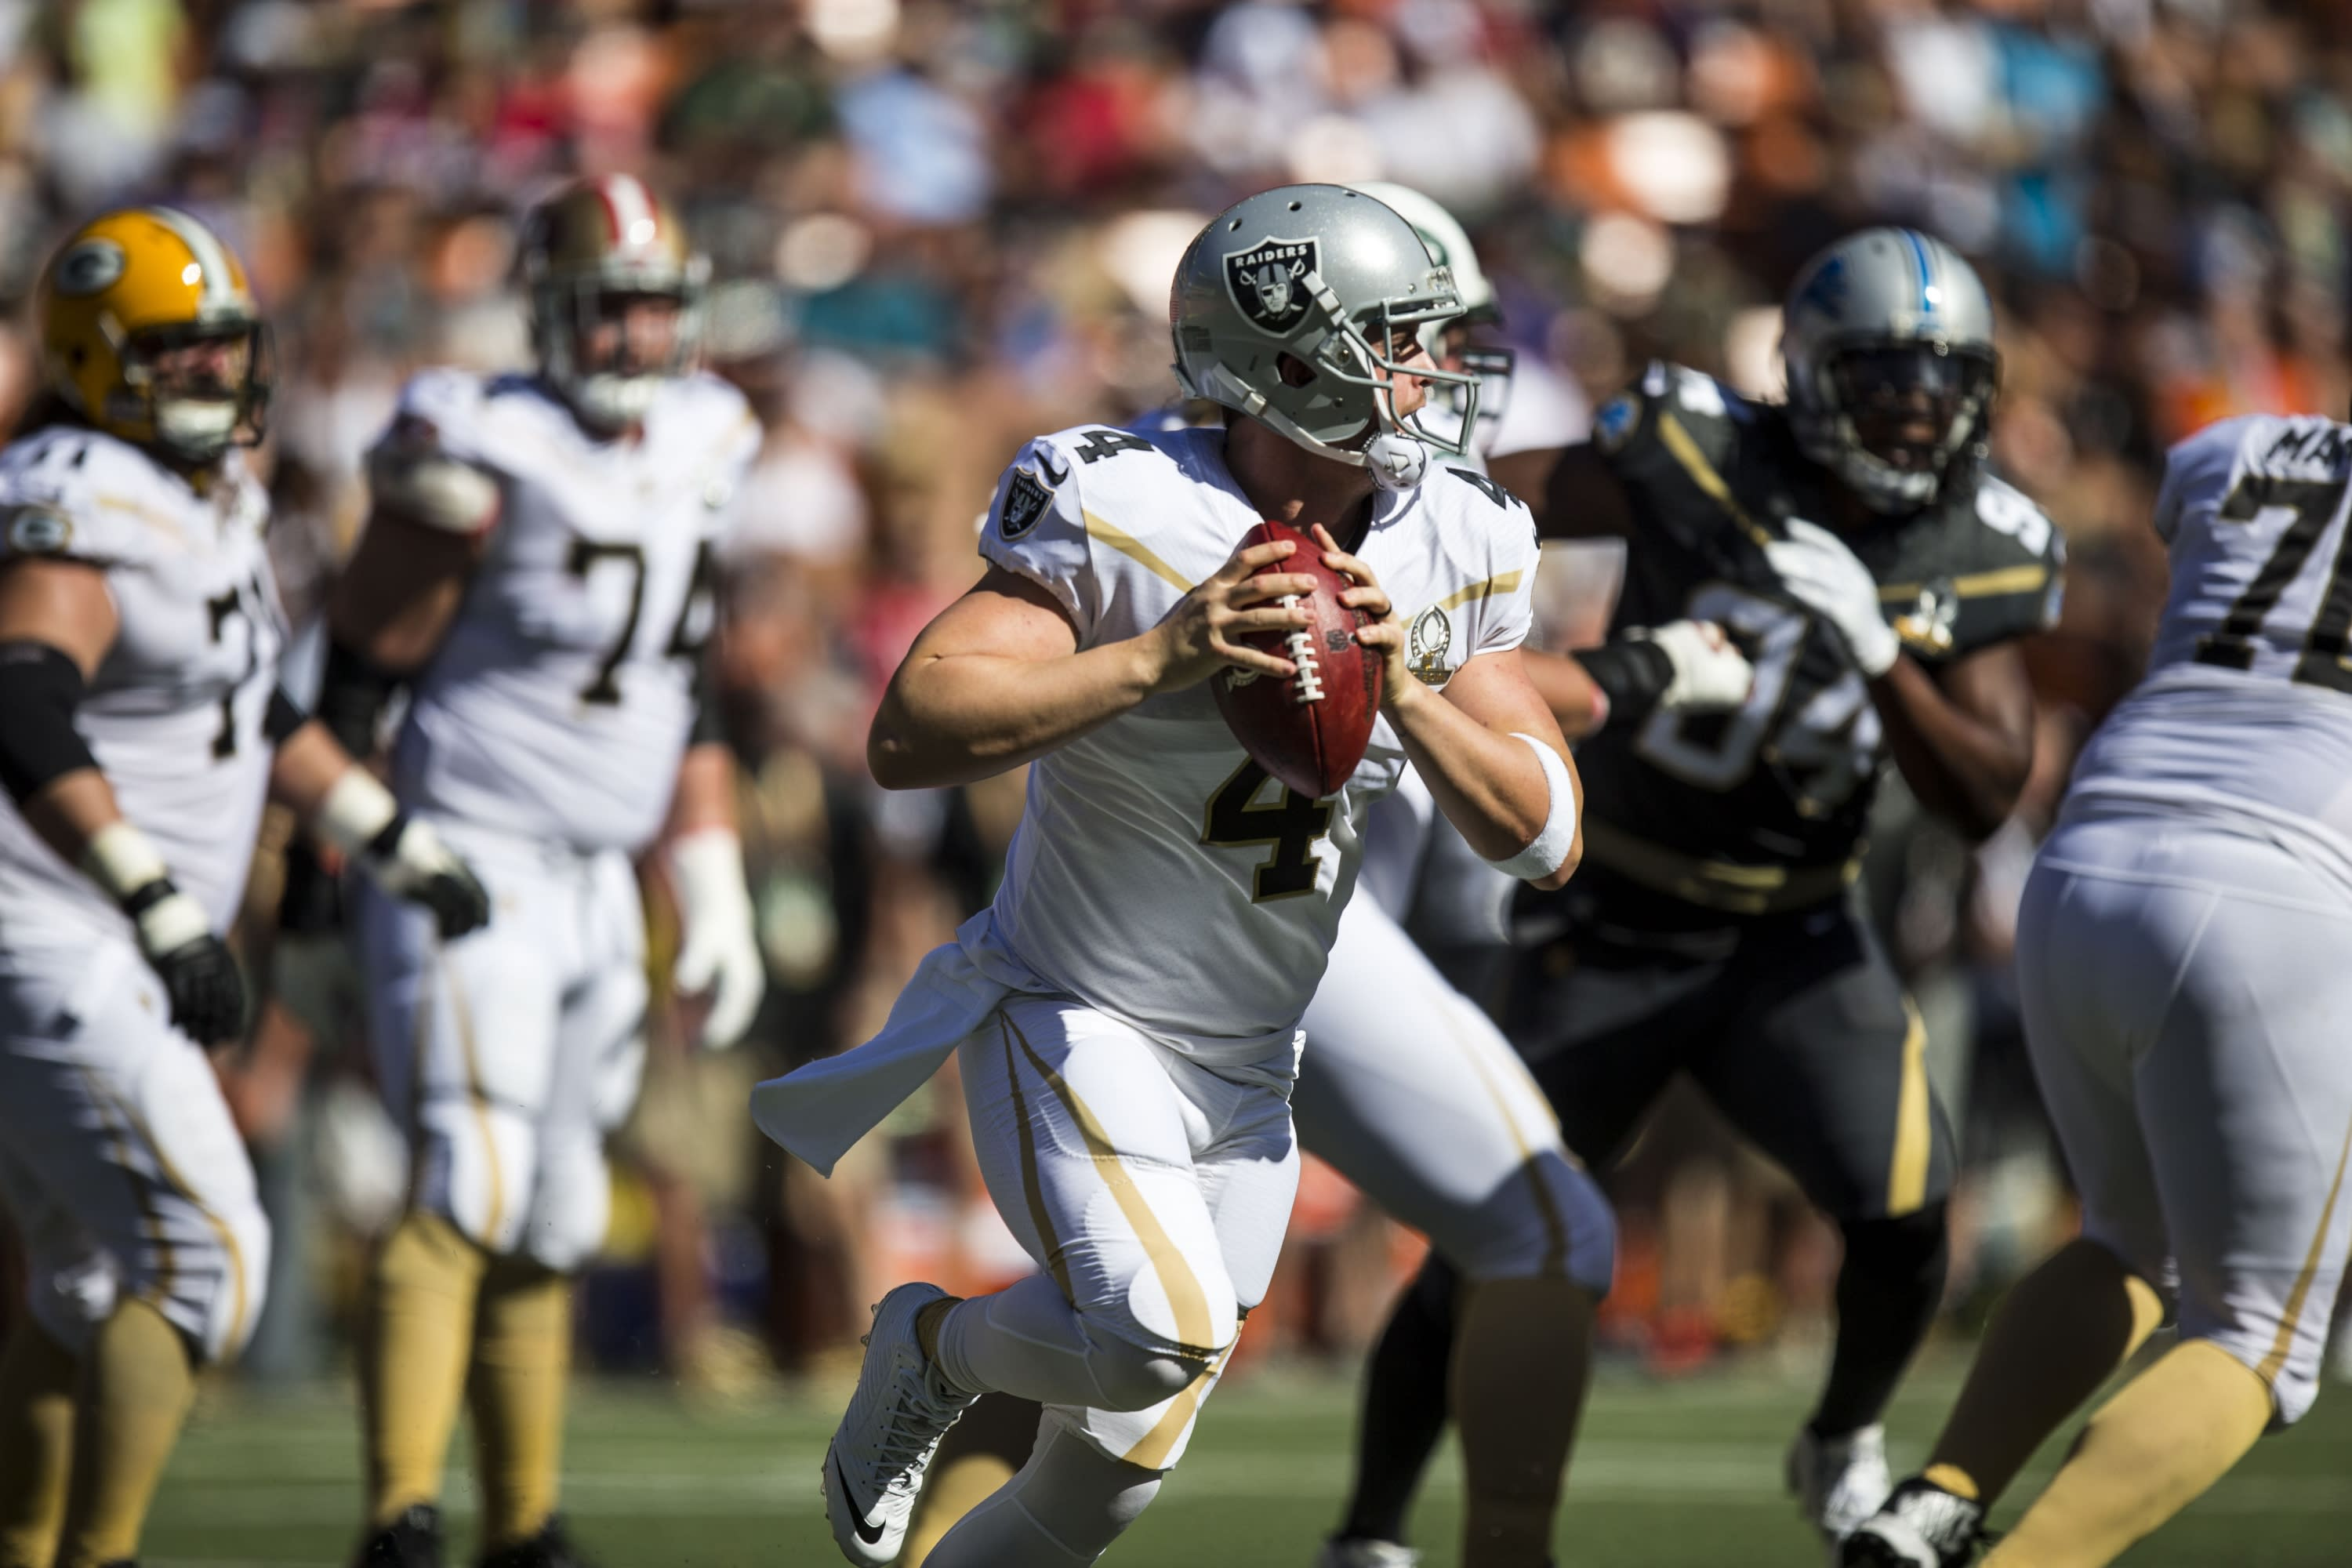 premium selection 83f5b 09e68 Even for Pro Bowl, this throw by Raiders' Derek Carr was a dime